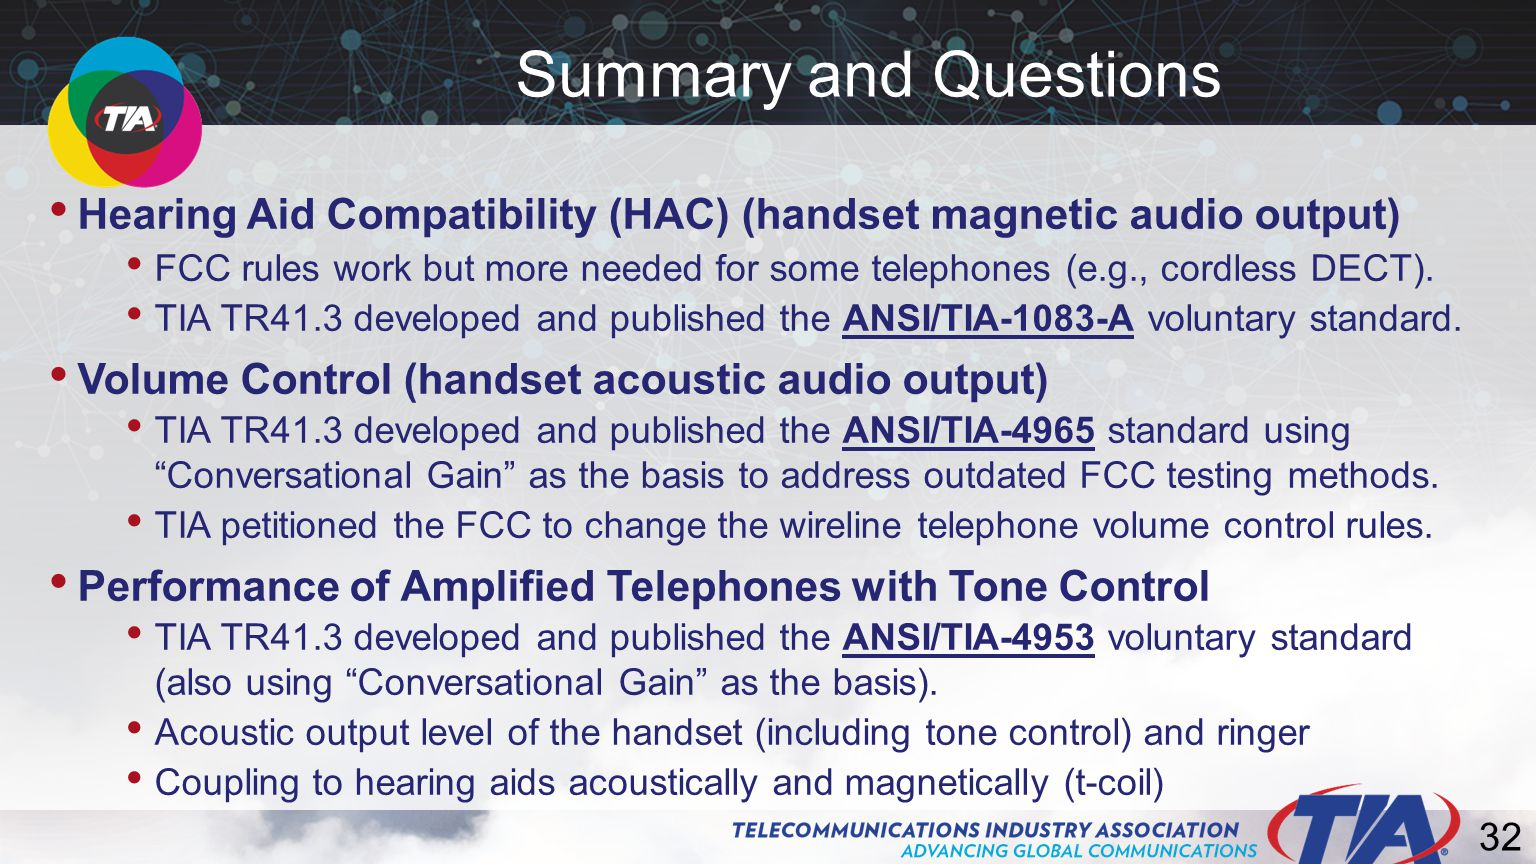 32 Summary and Questions Hearing Aid Compatibility (HAC) (handset magnetic audio output) FCC rules work but more needed for some telephones (e.g., cordless DECT).